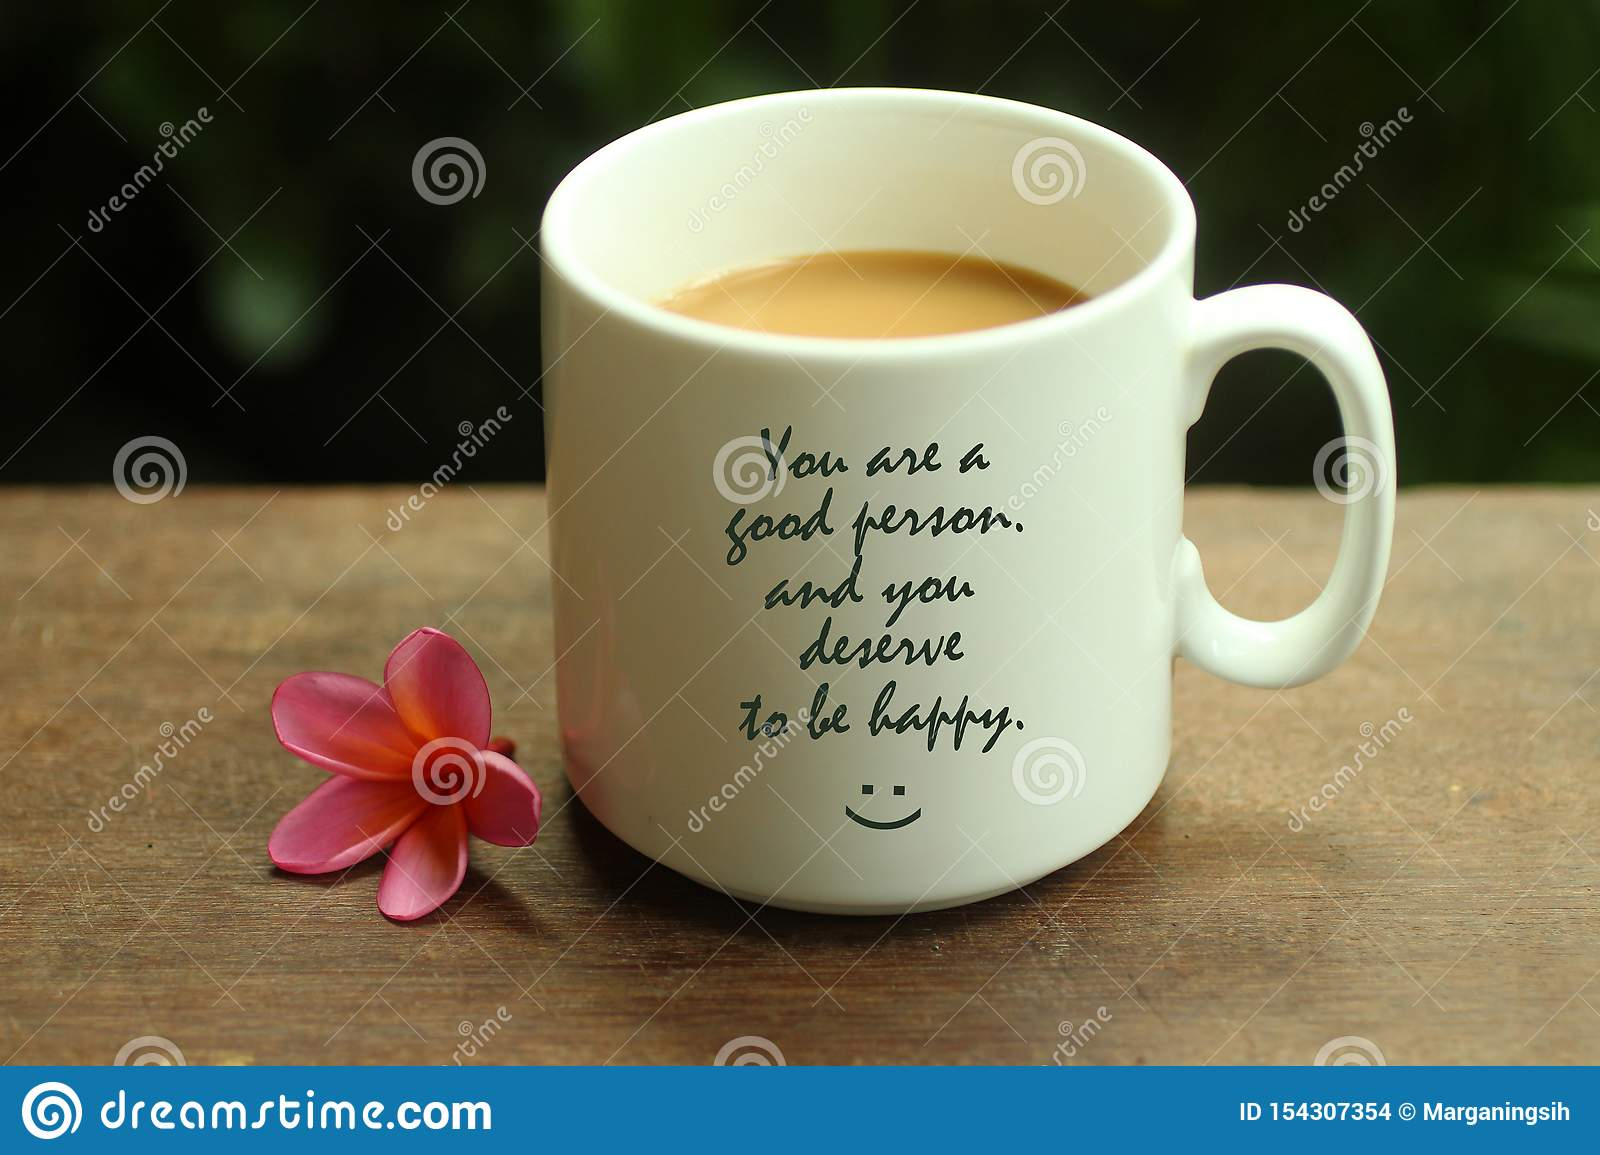 happy inspirational quote you are a good person and you deserve